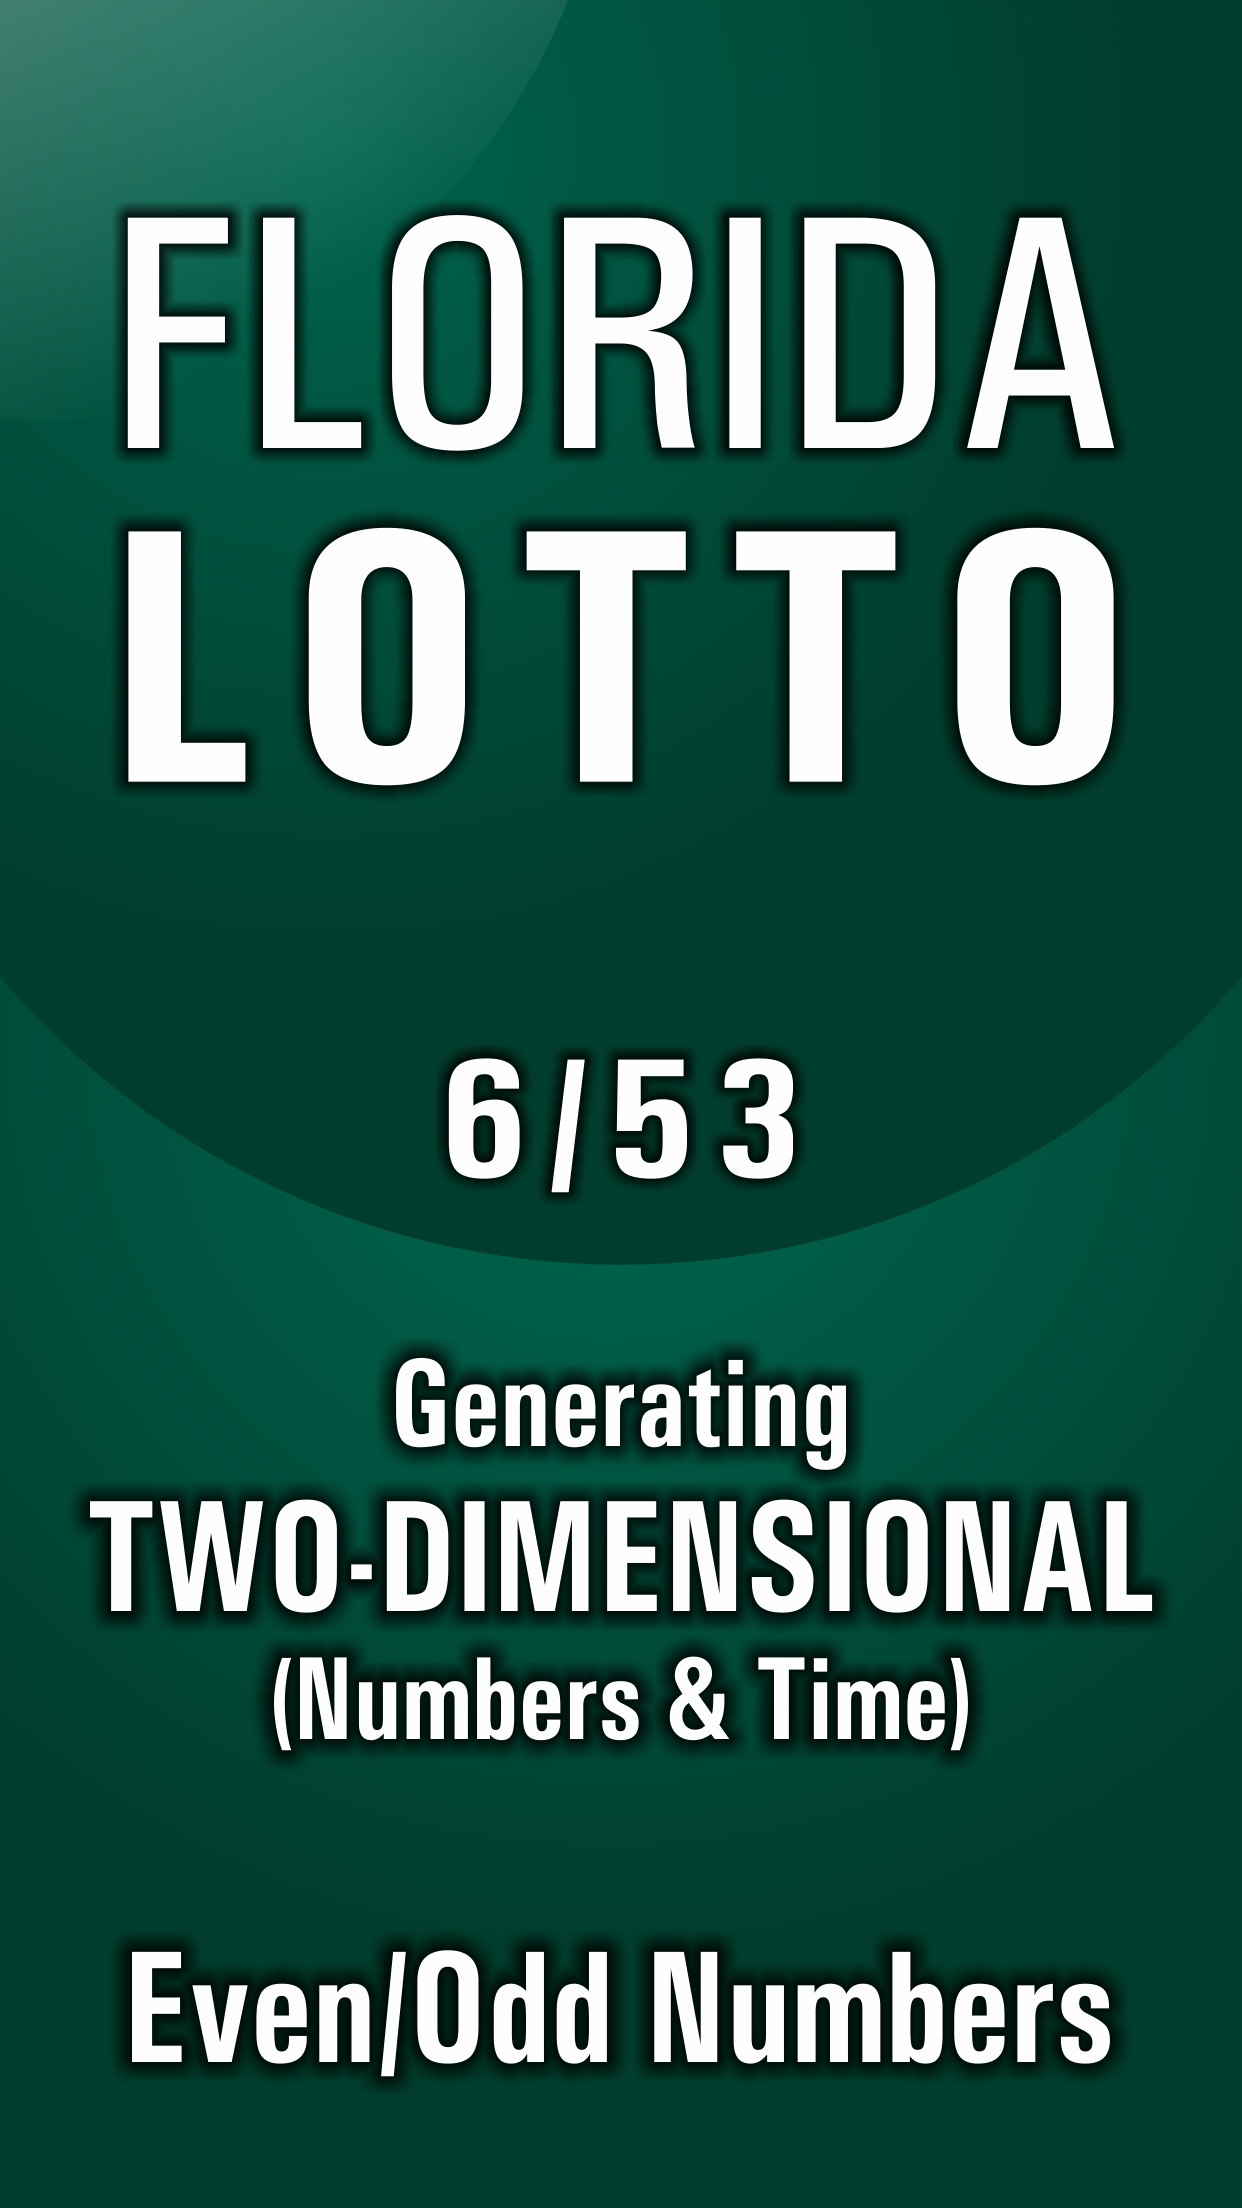 Florida Lottery (FL) - Lotto Results, Tips & Winning Numbers